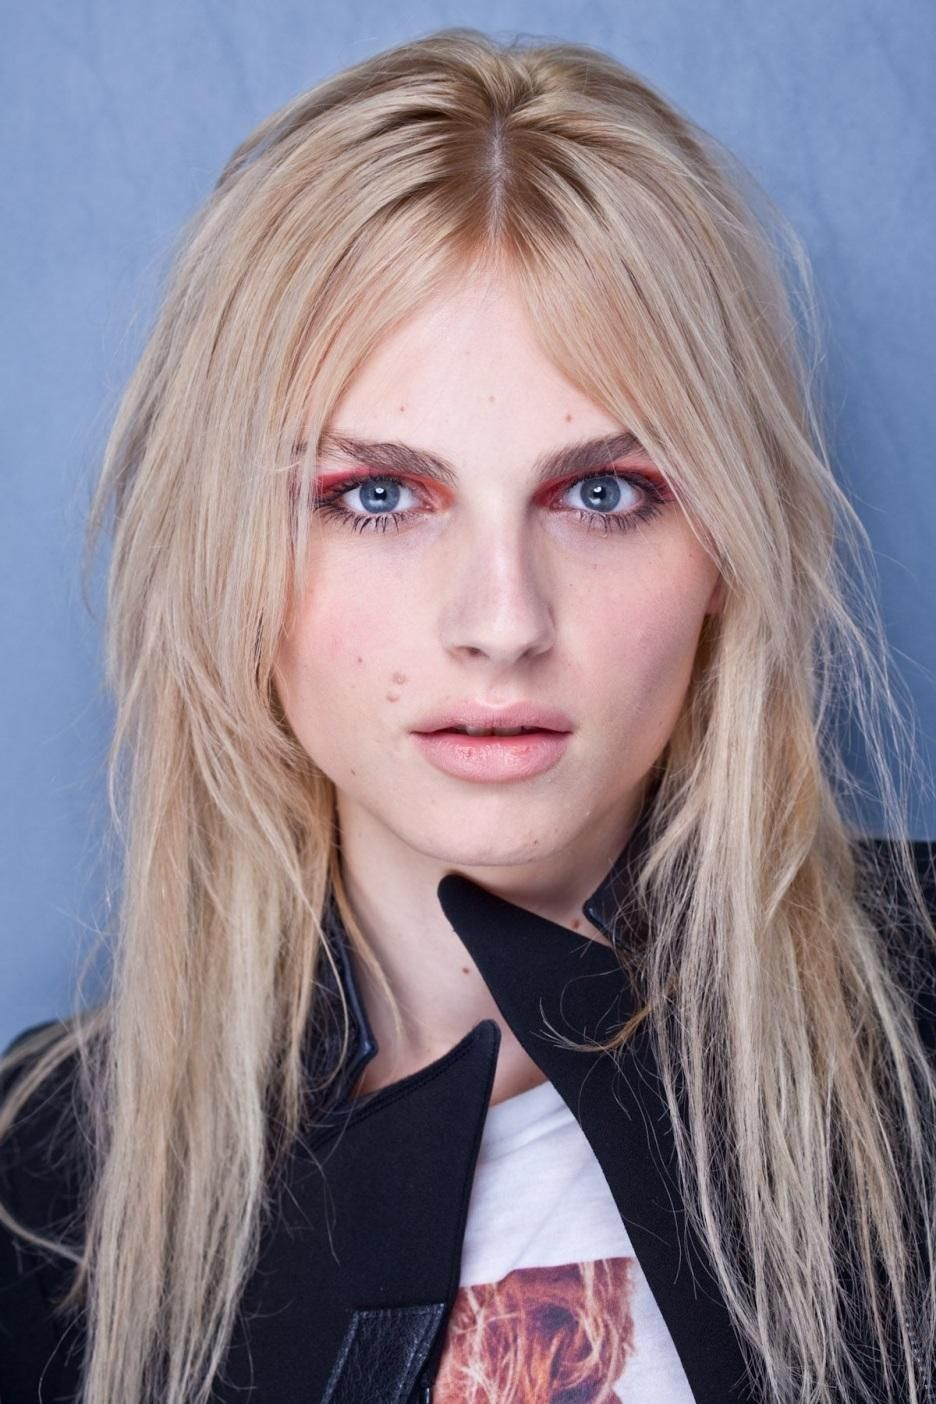 andrej pejic images andrej HD wallpaper and background photos .